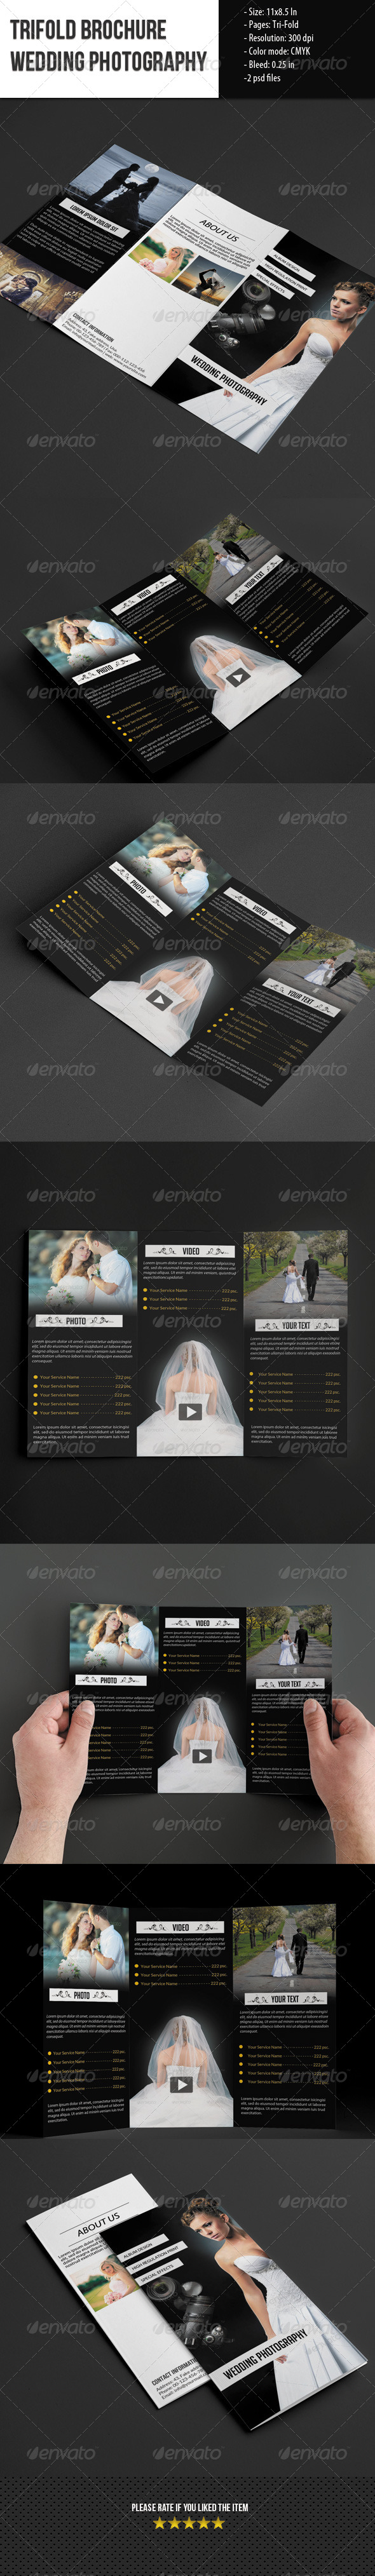 GraphicRiver Trifold Brochure for Wedding Photography 5570547